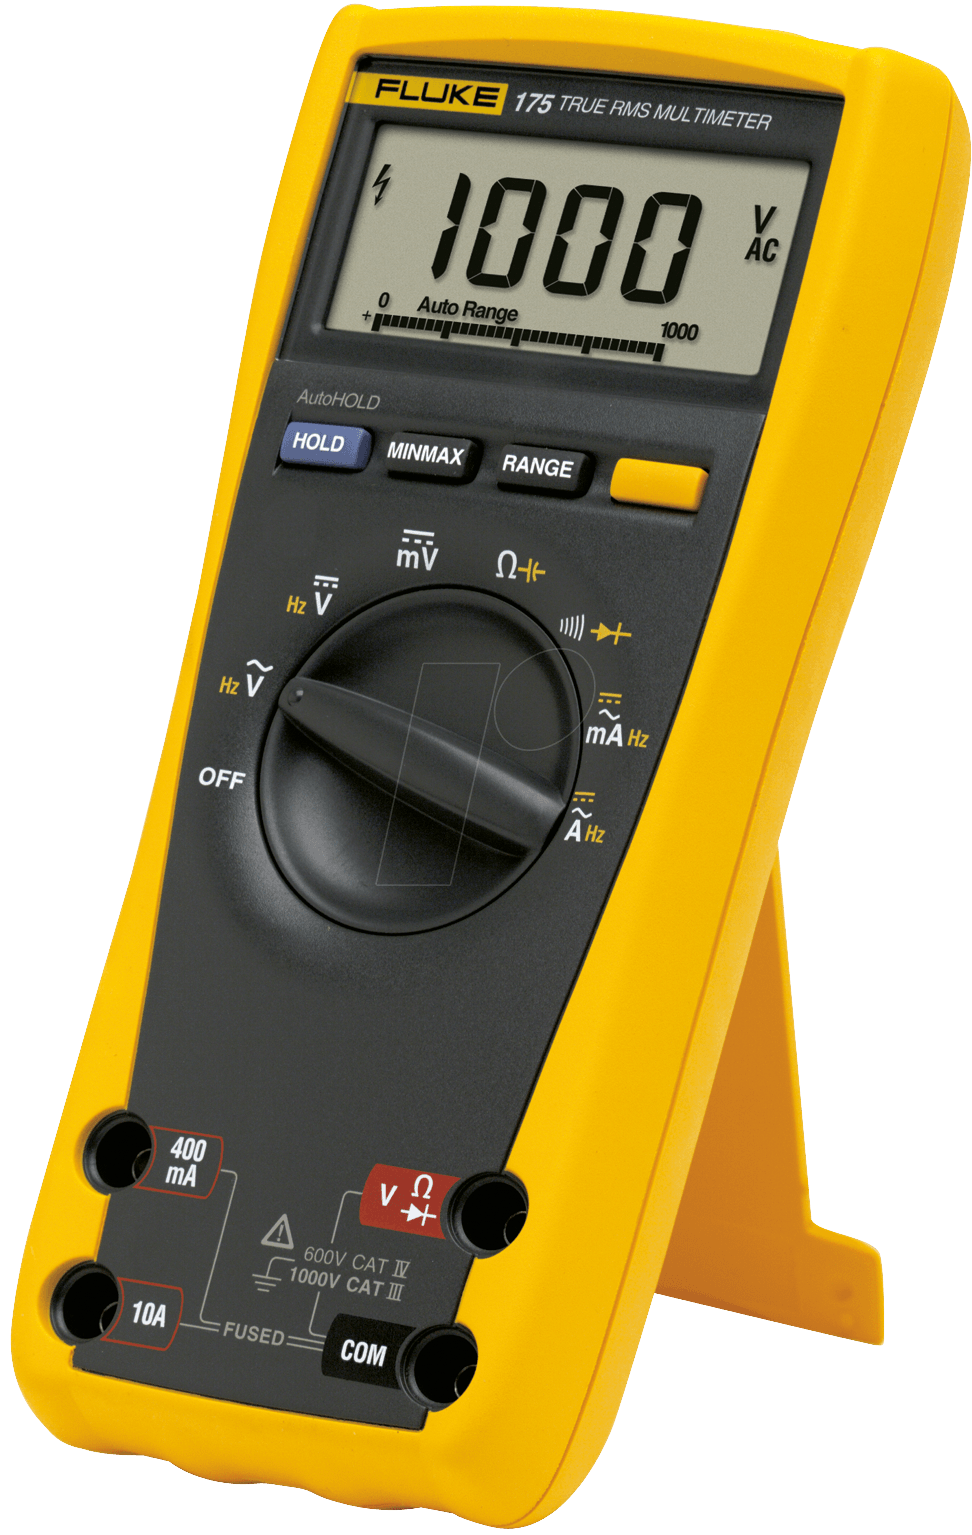 fluke 175 fluke 175 universal digital multimeter at. Black Bedroom Furniture Sets. Home Design Ideas